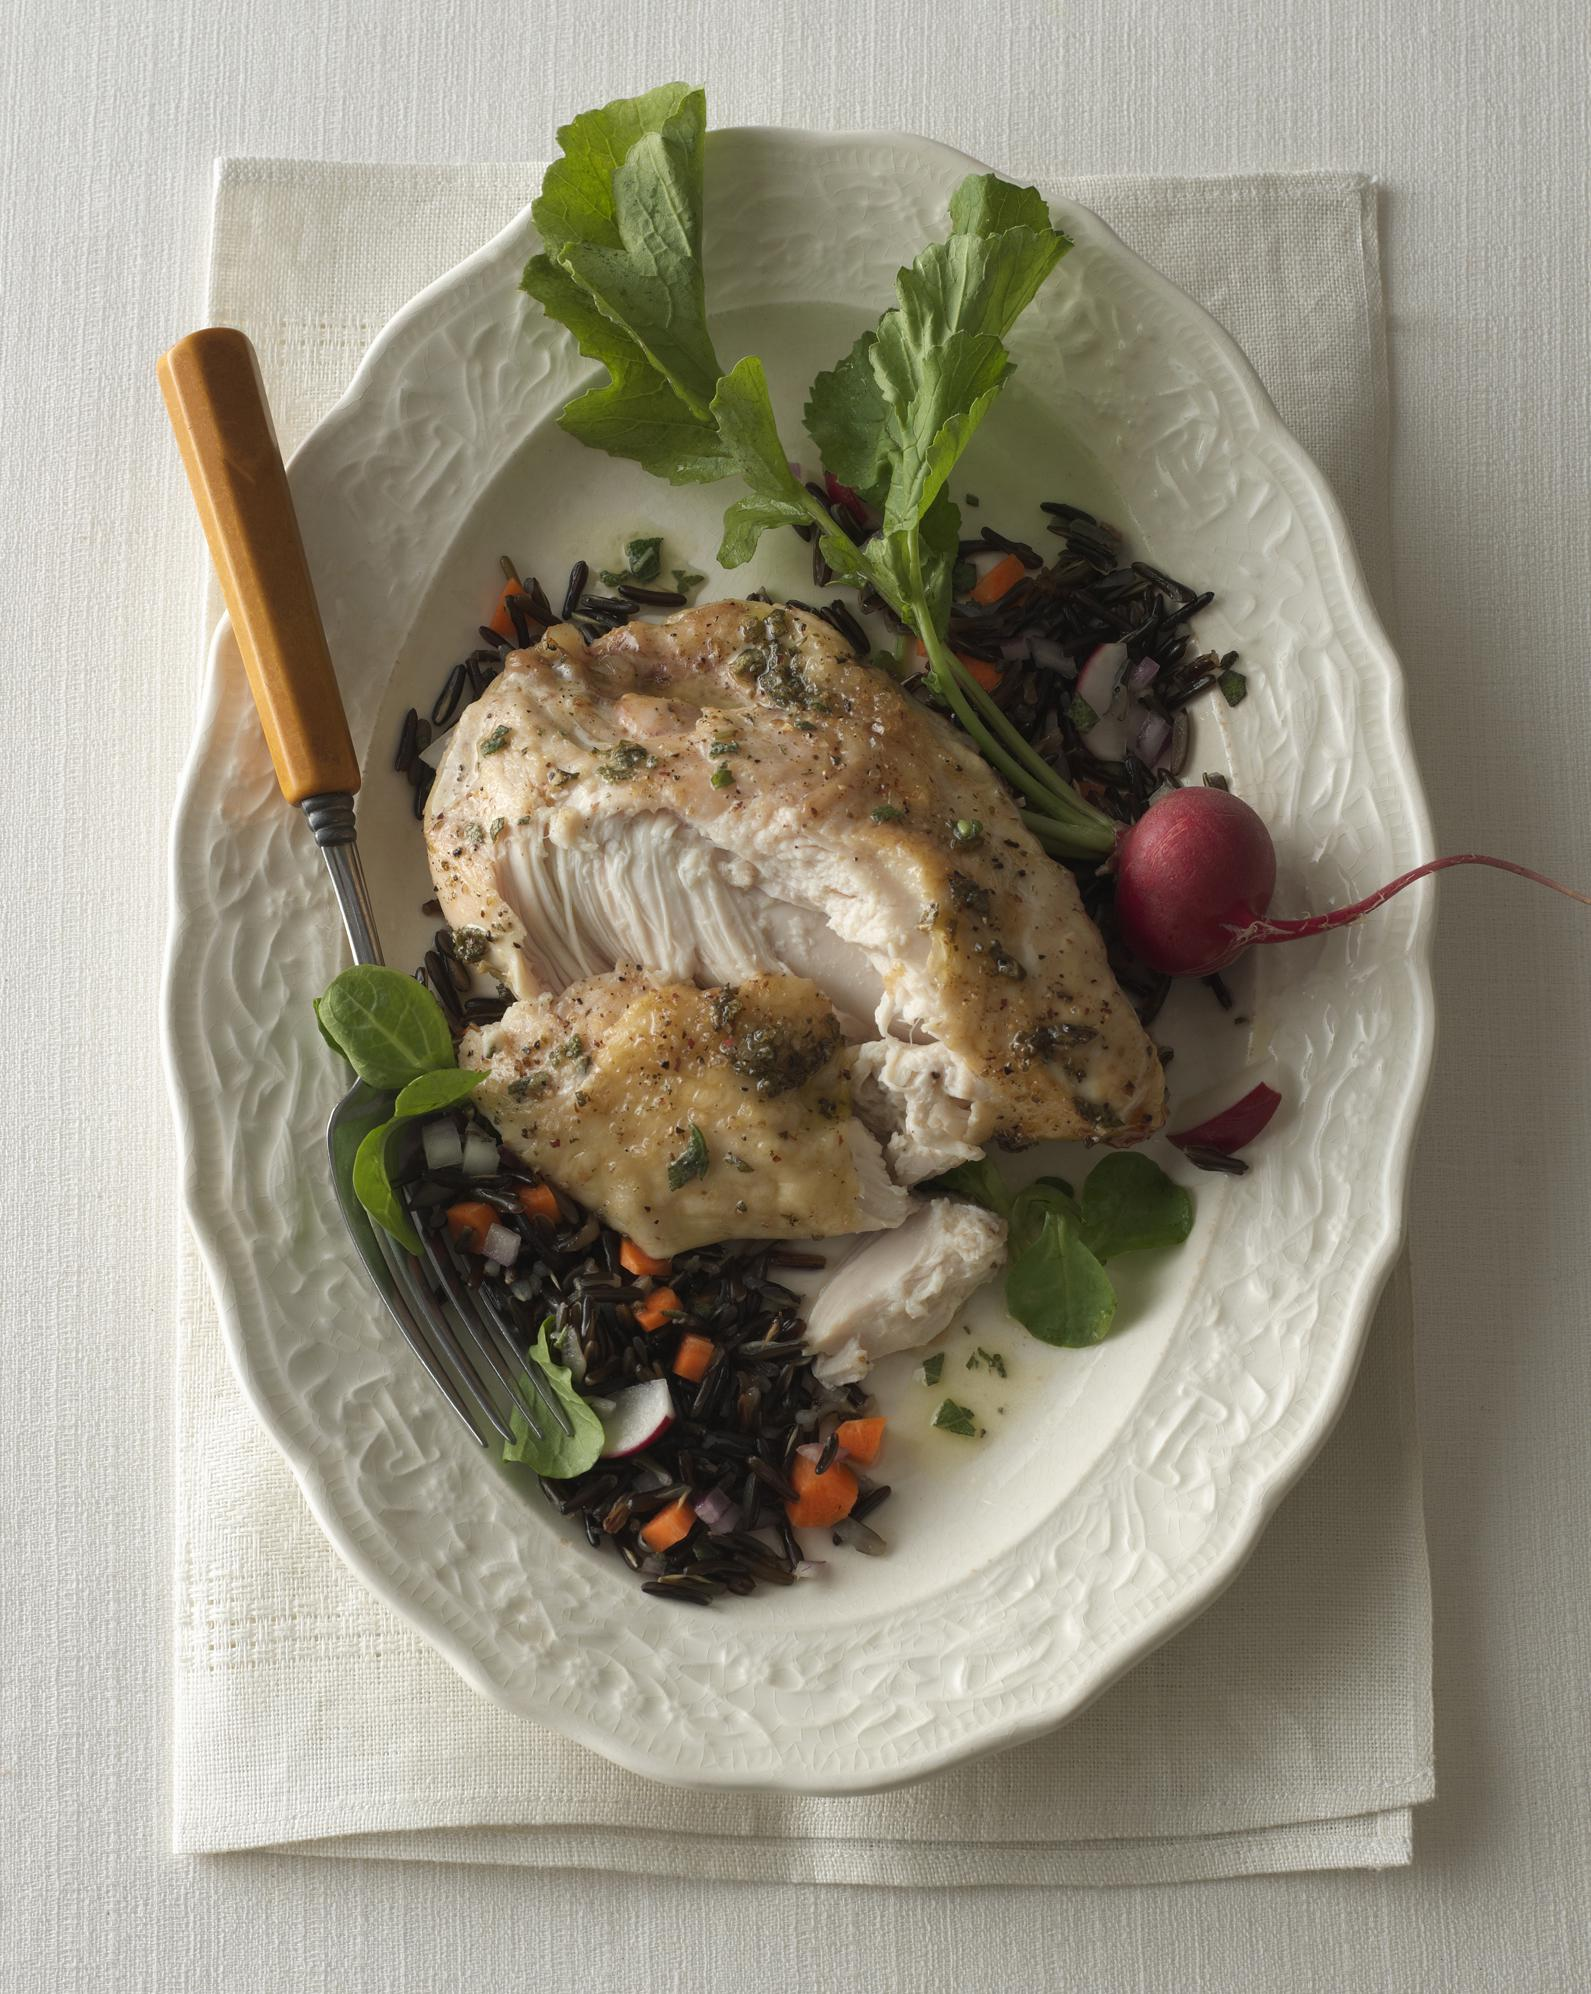 Sage-Roasted Chicken with Wild Rice Salad